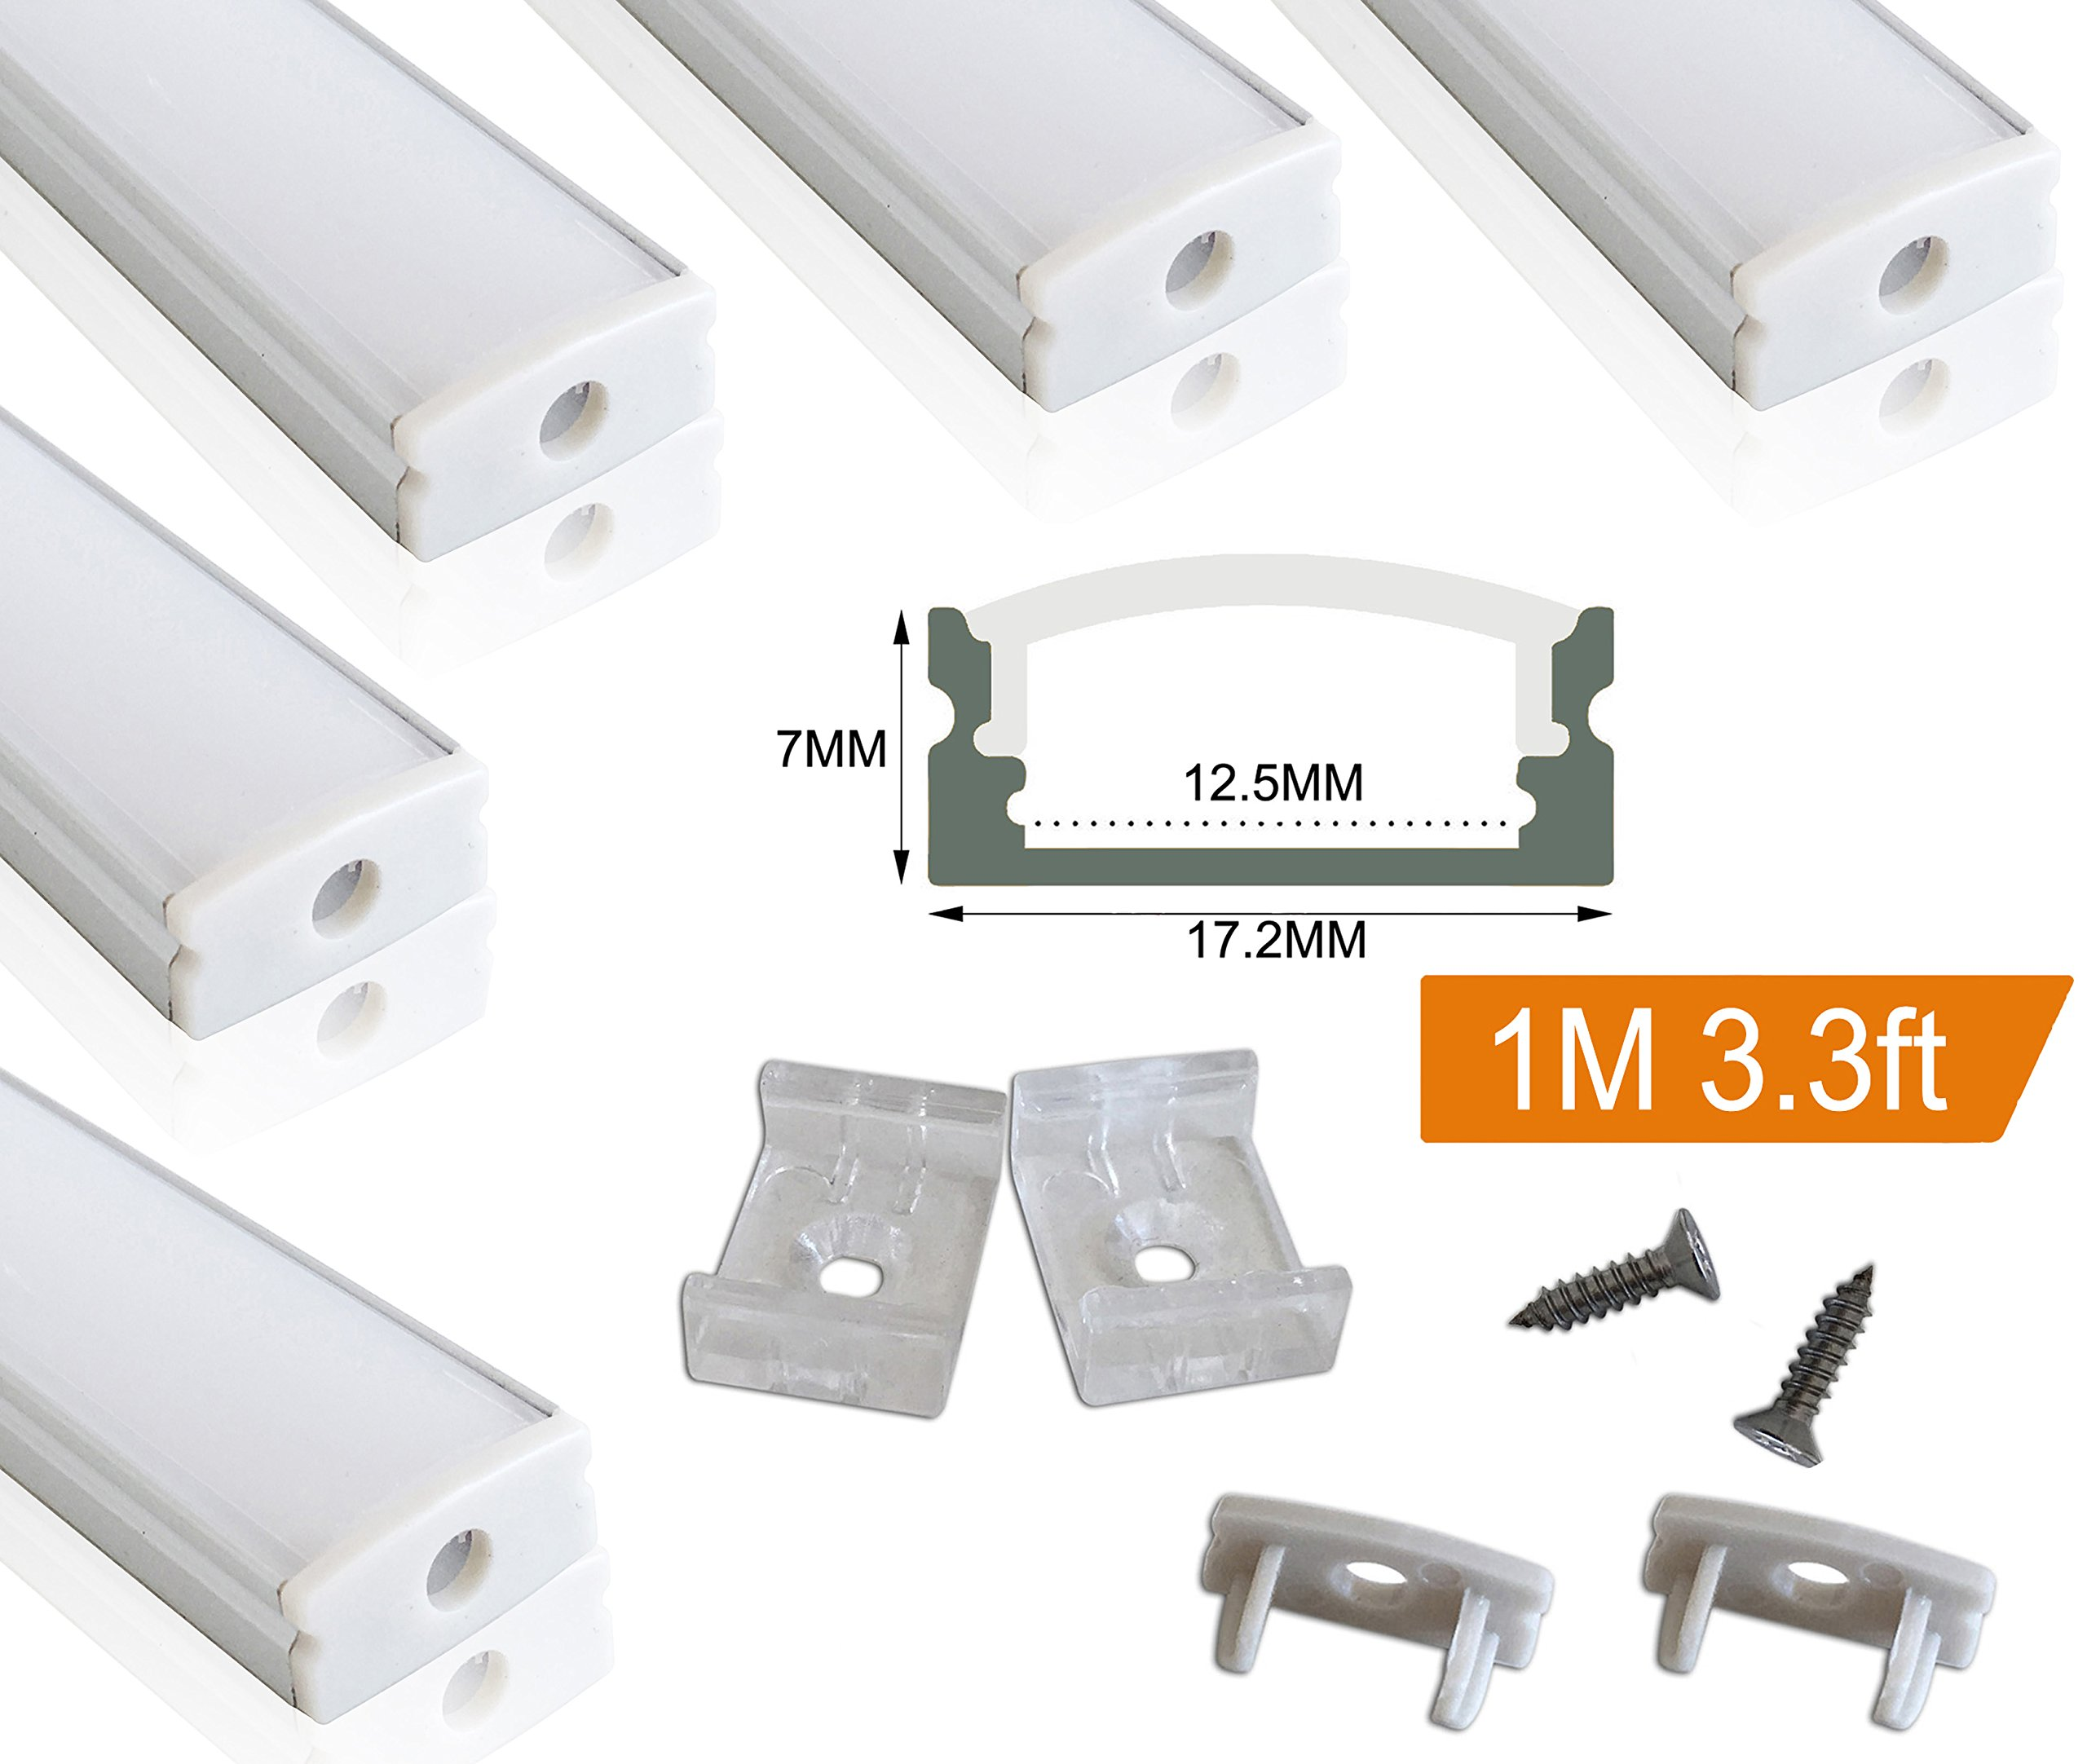 Muzata 5 PACK 1M/3.3ft Aluminum LED Channel for LED Strip Lights, Easy to Cut, U-Shape Aluminum Profile with All Accessories for Easy Installation